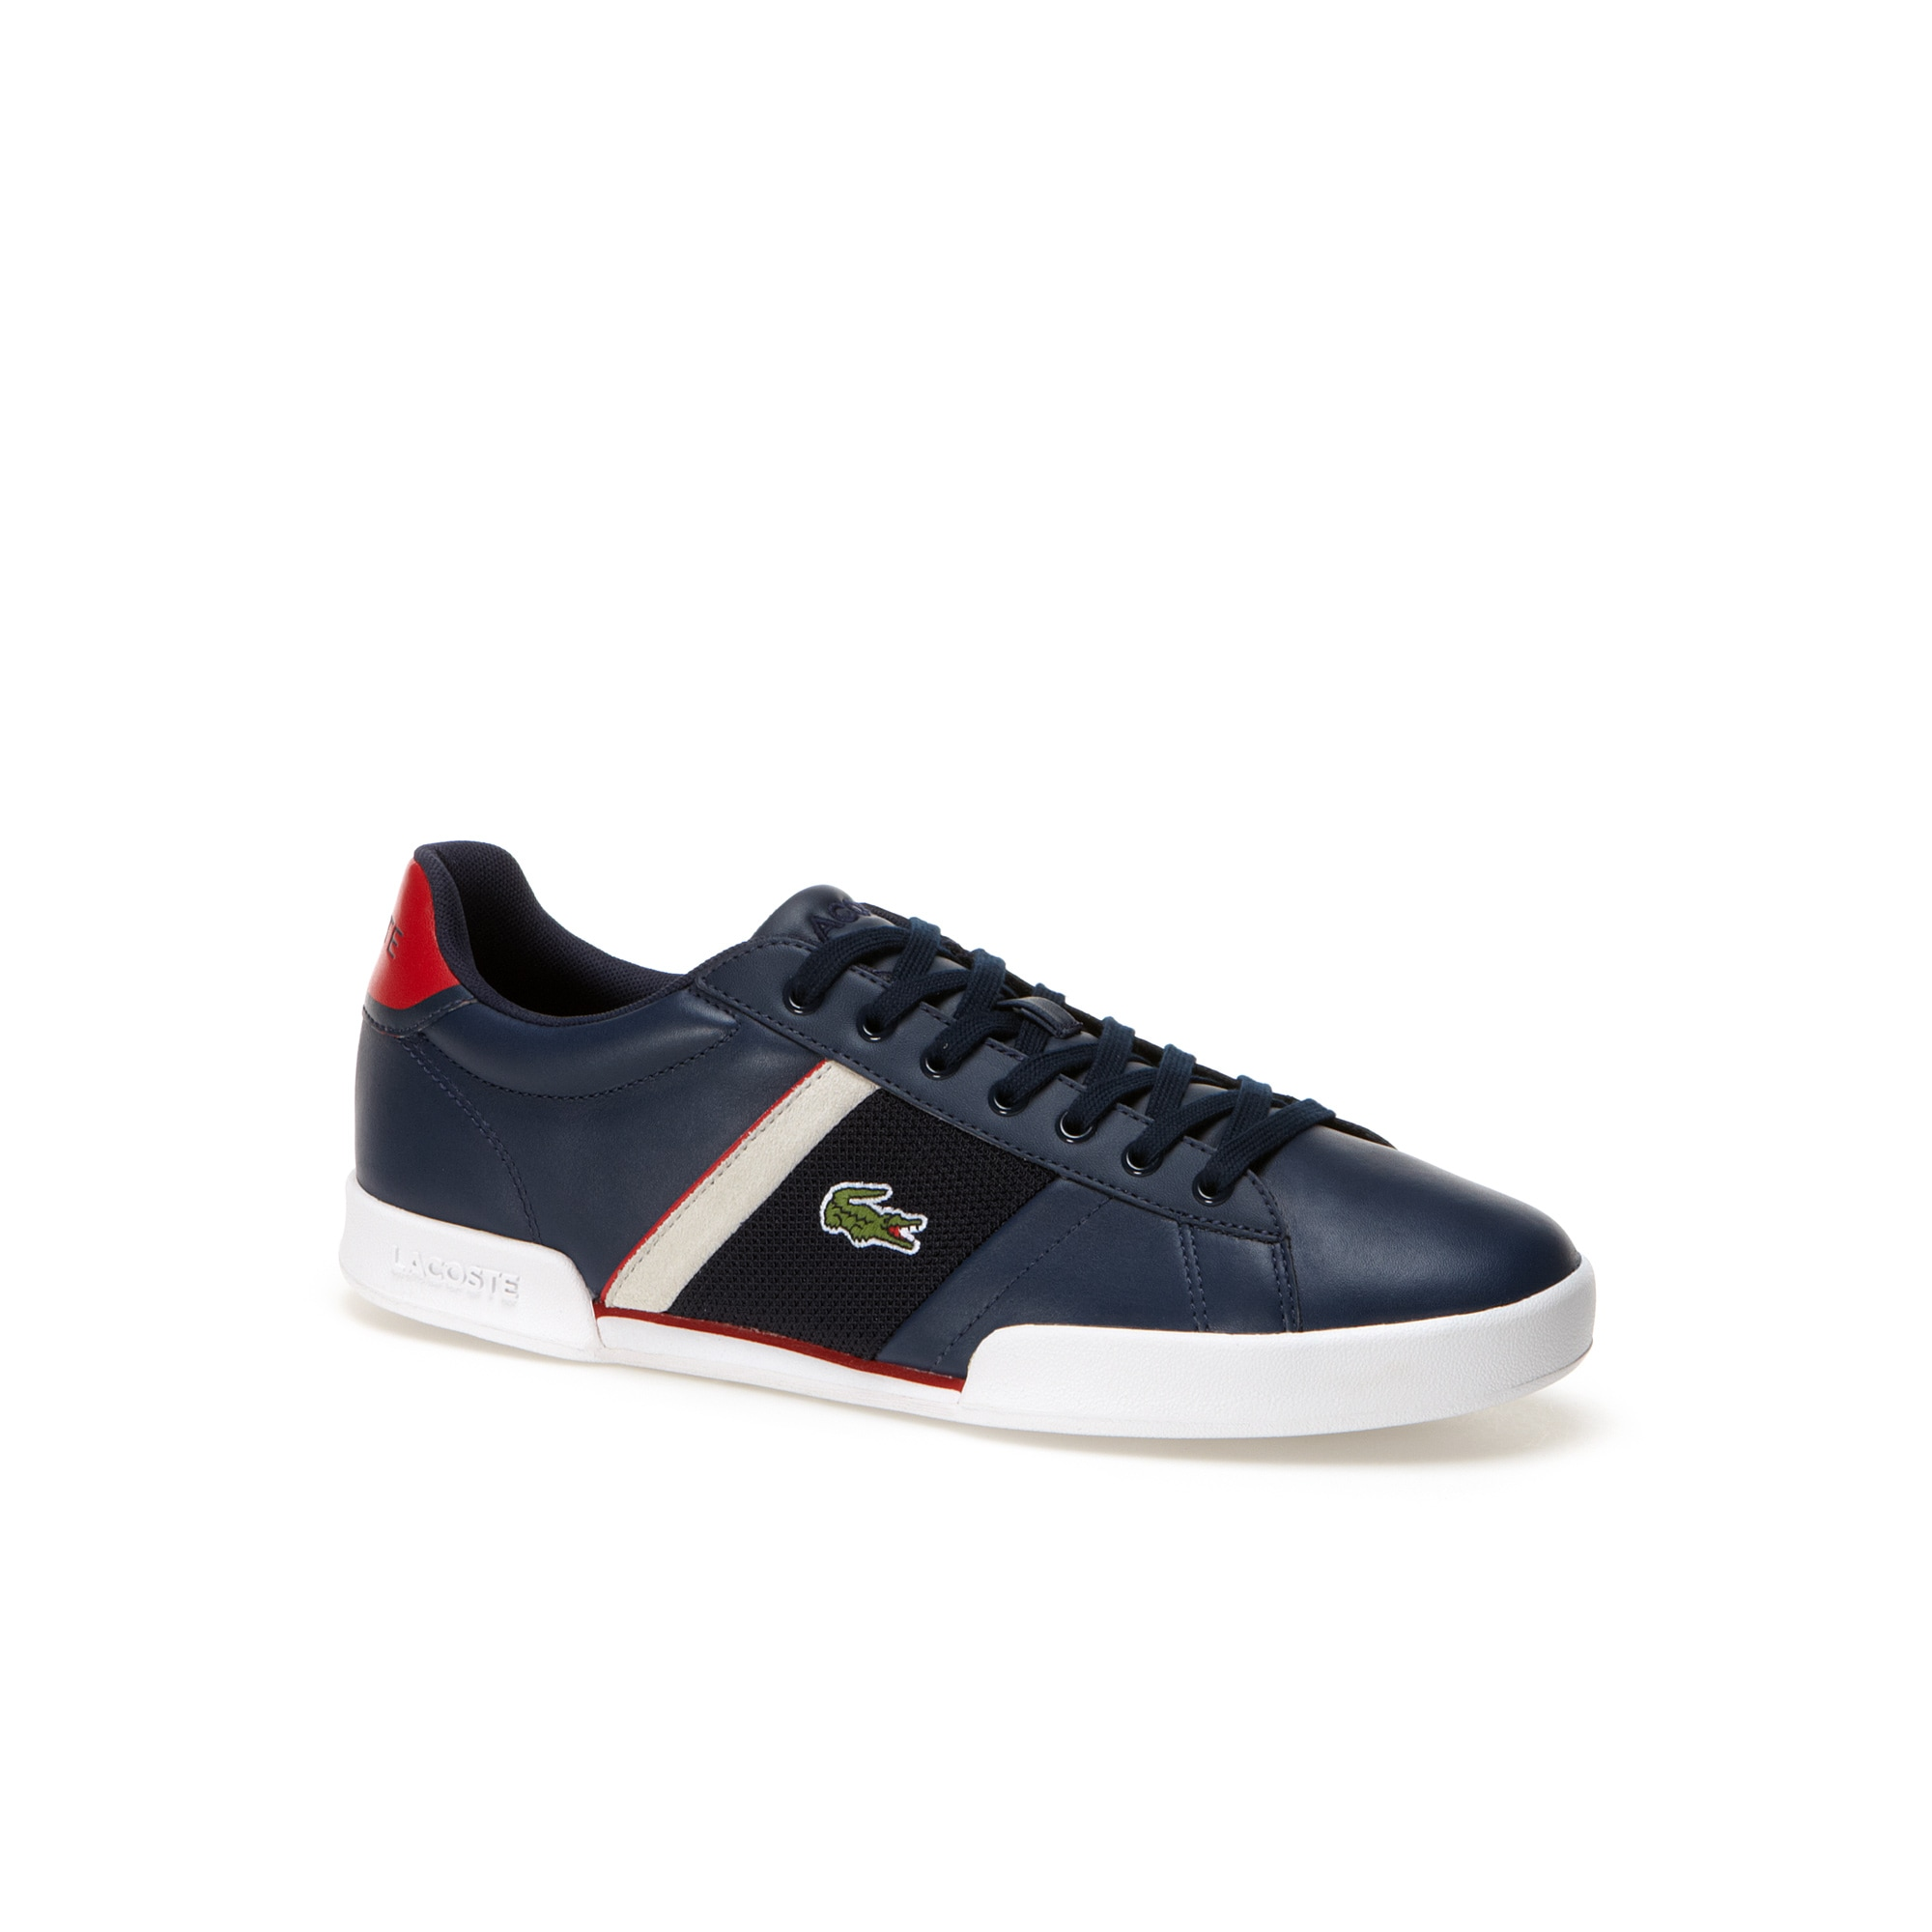 Deston low-rise sneakers in leather with mesh panels